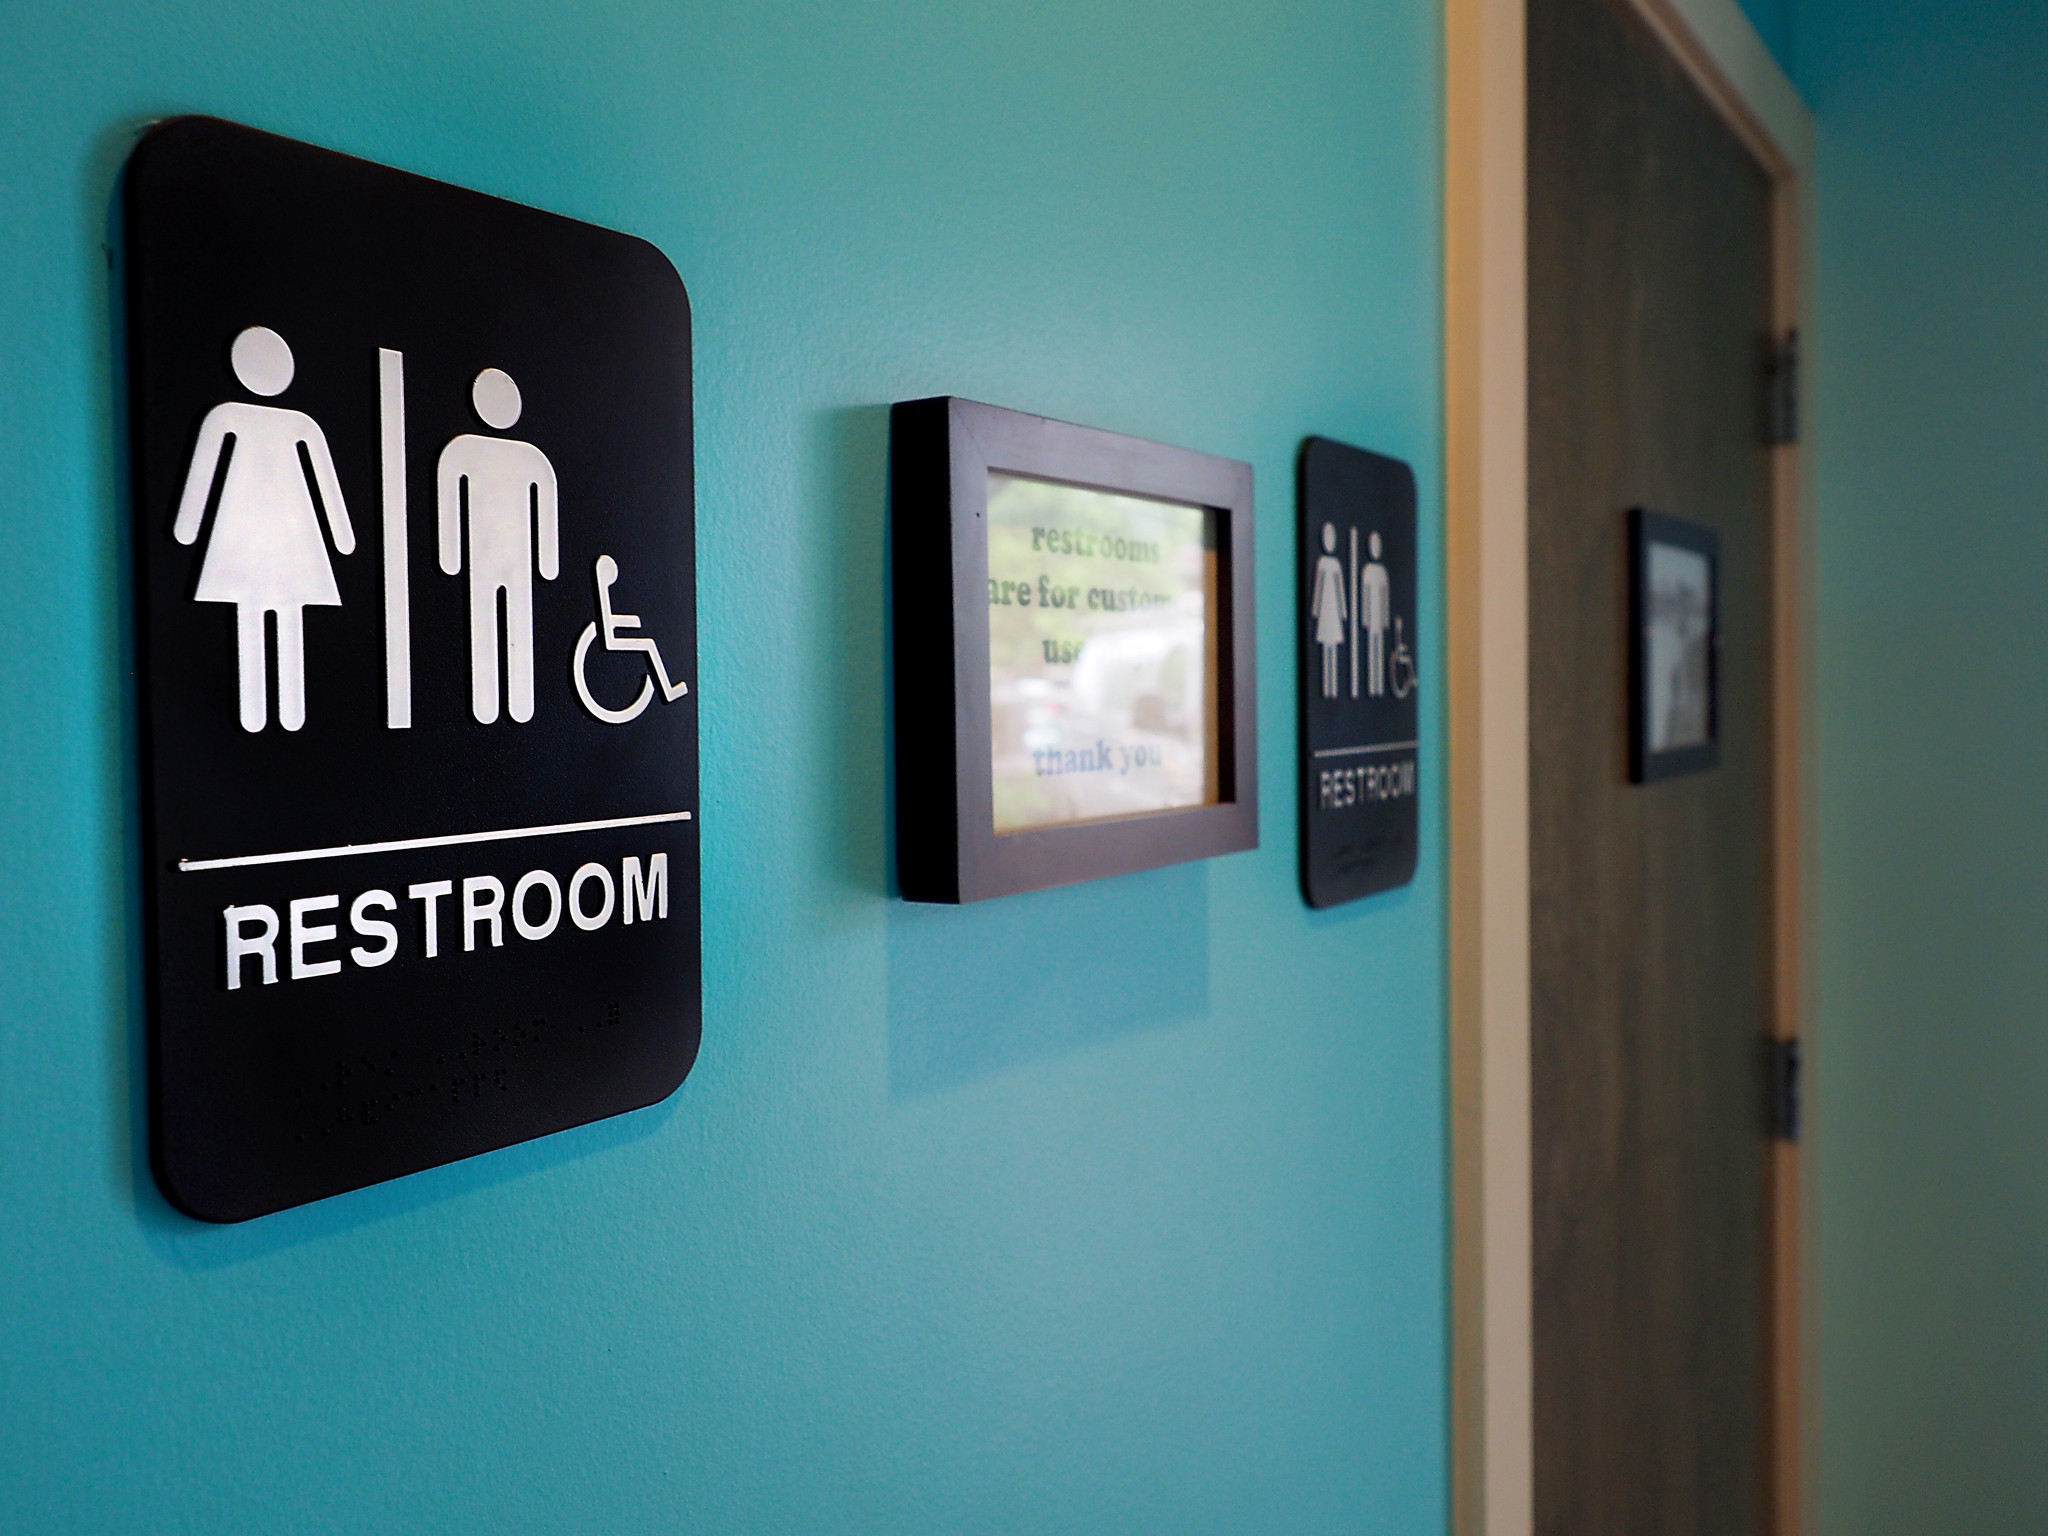 New ymca guidelines support transgender bathroom locker room